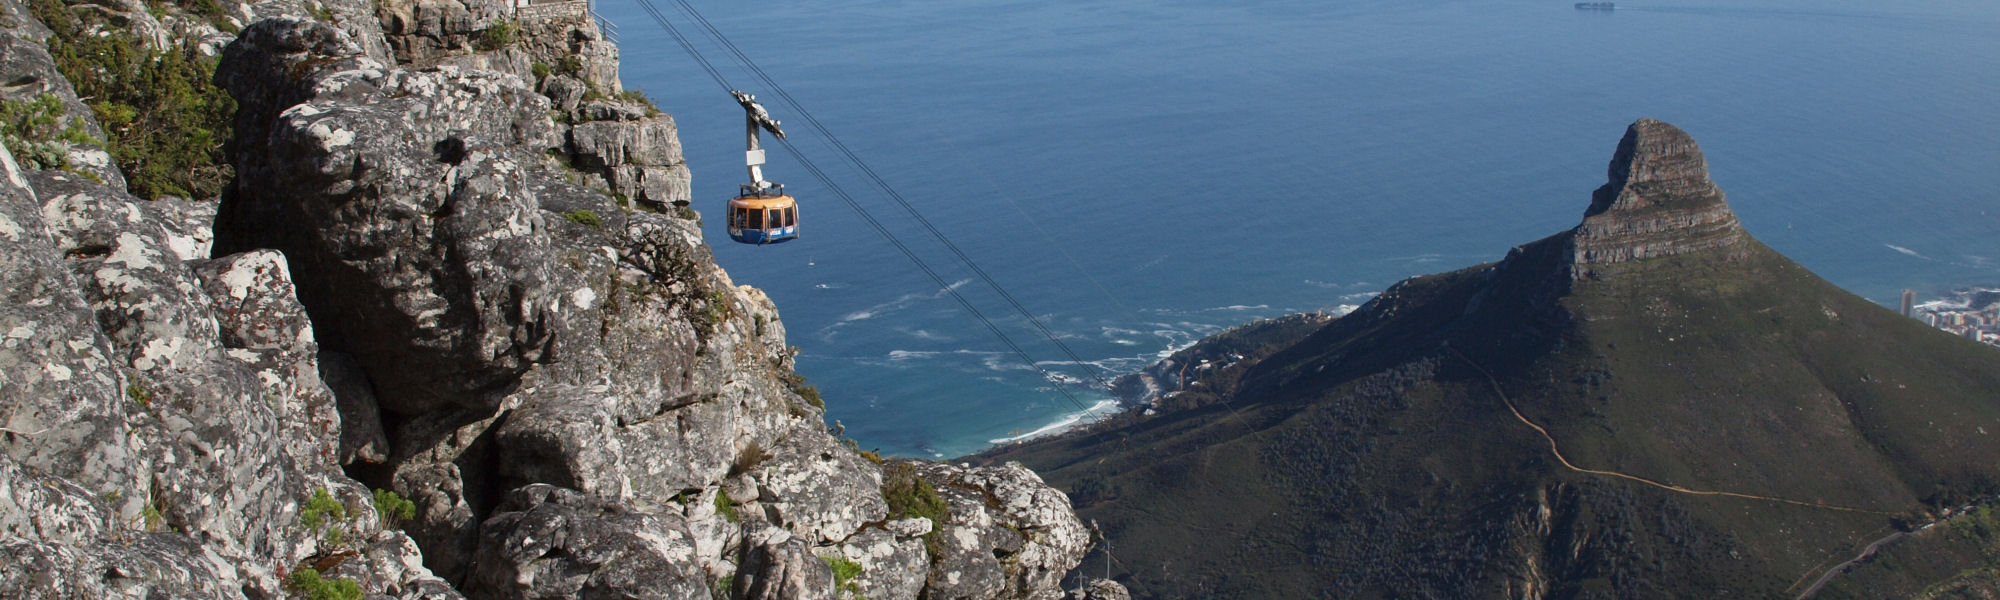 Garden Route Tour – Luxury 7 days